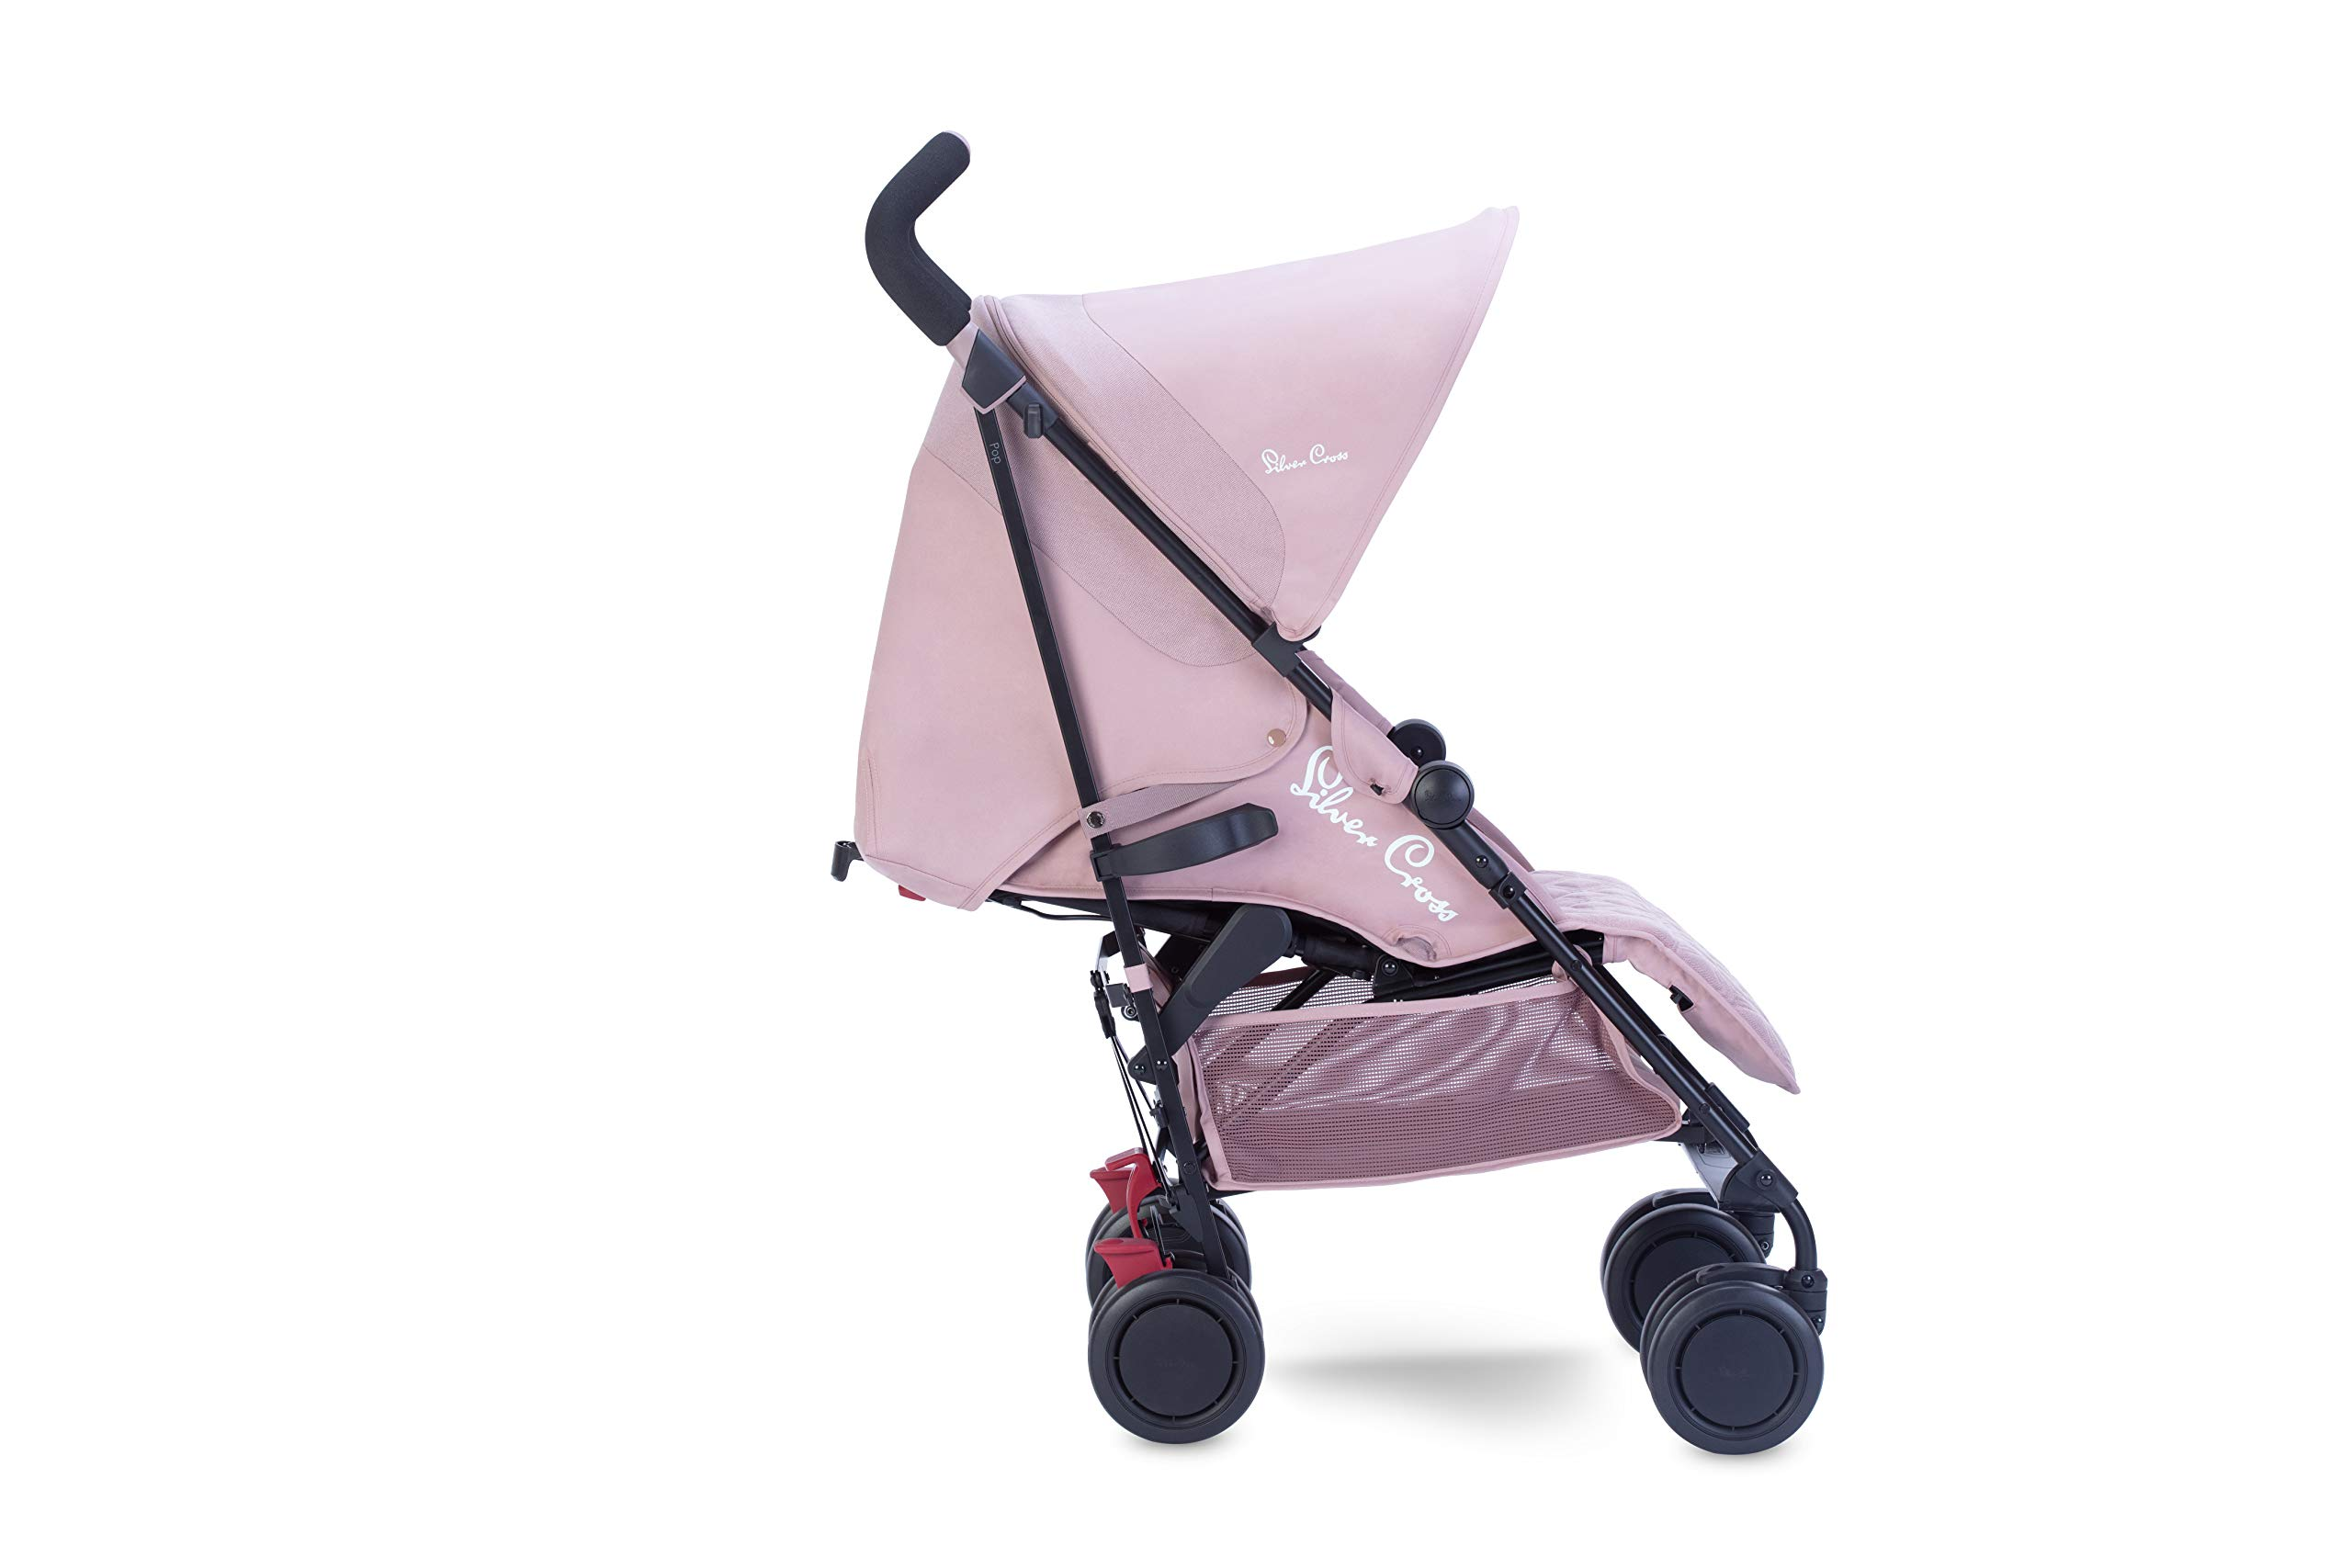 Silver Cross Pop Stroller, Compact and Lightweight Pushchair - Blush Silver Cross NEWBORN TO TODDLER: Suitable from birth up to toddlers (25kg), sitting upright to watch the world, or reclining to a lie-flat position WATER AND WIND RESISTANT: Ideal for all weather conditions to keep your baby warm and protected from wind and rain LIGHTWEIGHT AND COMPACT: Quick and easy one-handed fold feature with a carry handle for ease positioned on the side of the matte black chassis 2